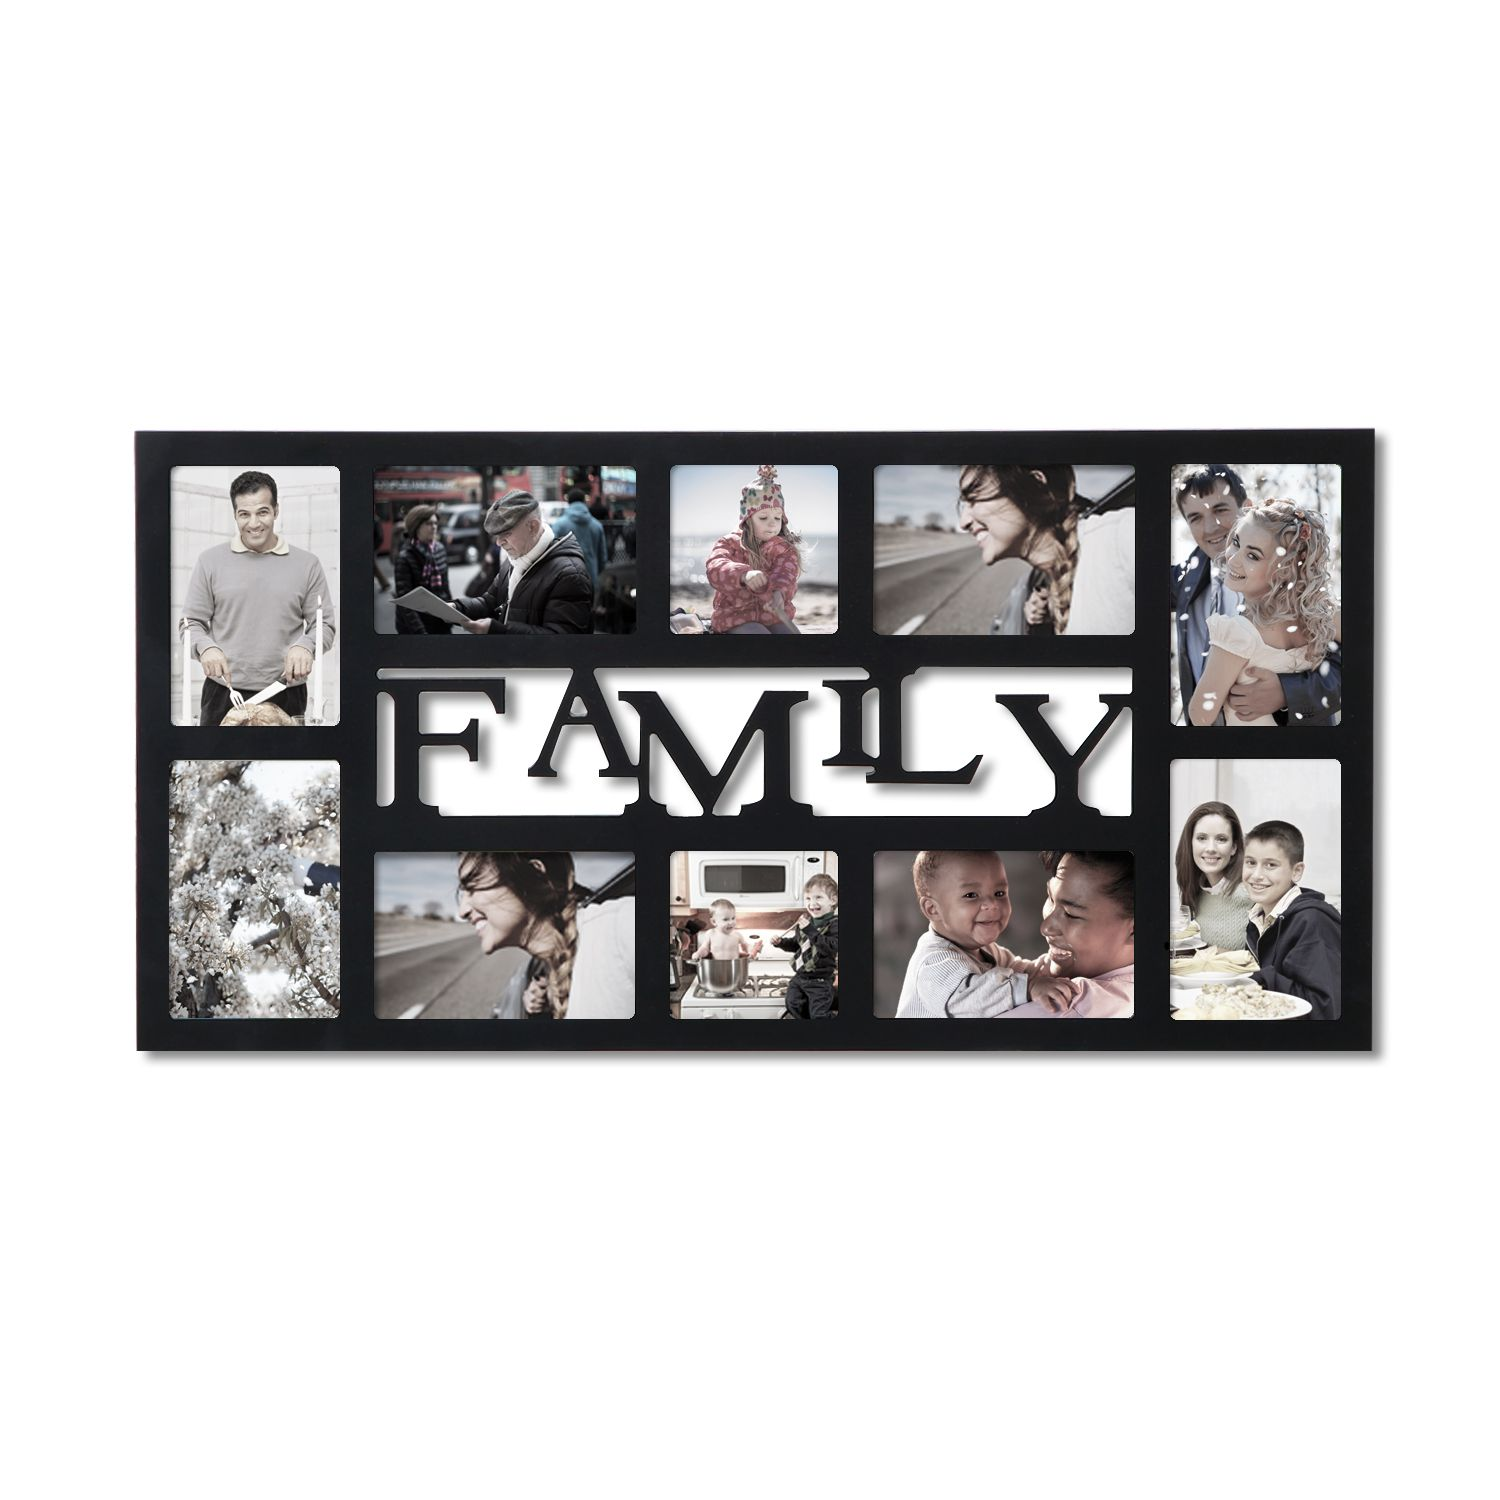 Adeco Decorative Black Wood Family Wall Hanging Collage Picture Photo Frame Pf0535 Collage Picture Frames Hanging Wall Decor Wood Wall Hanging